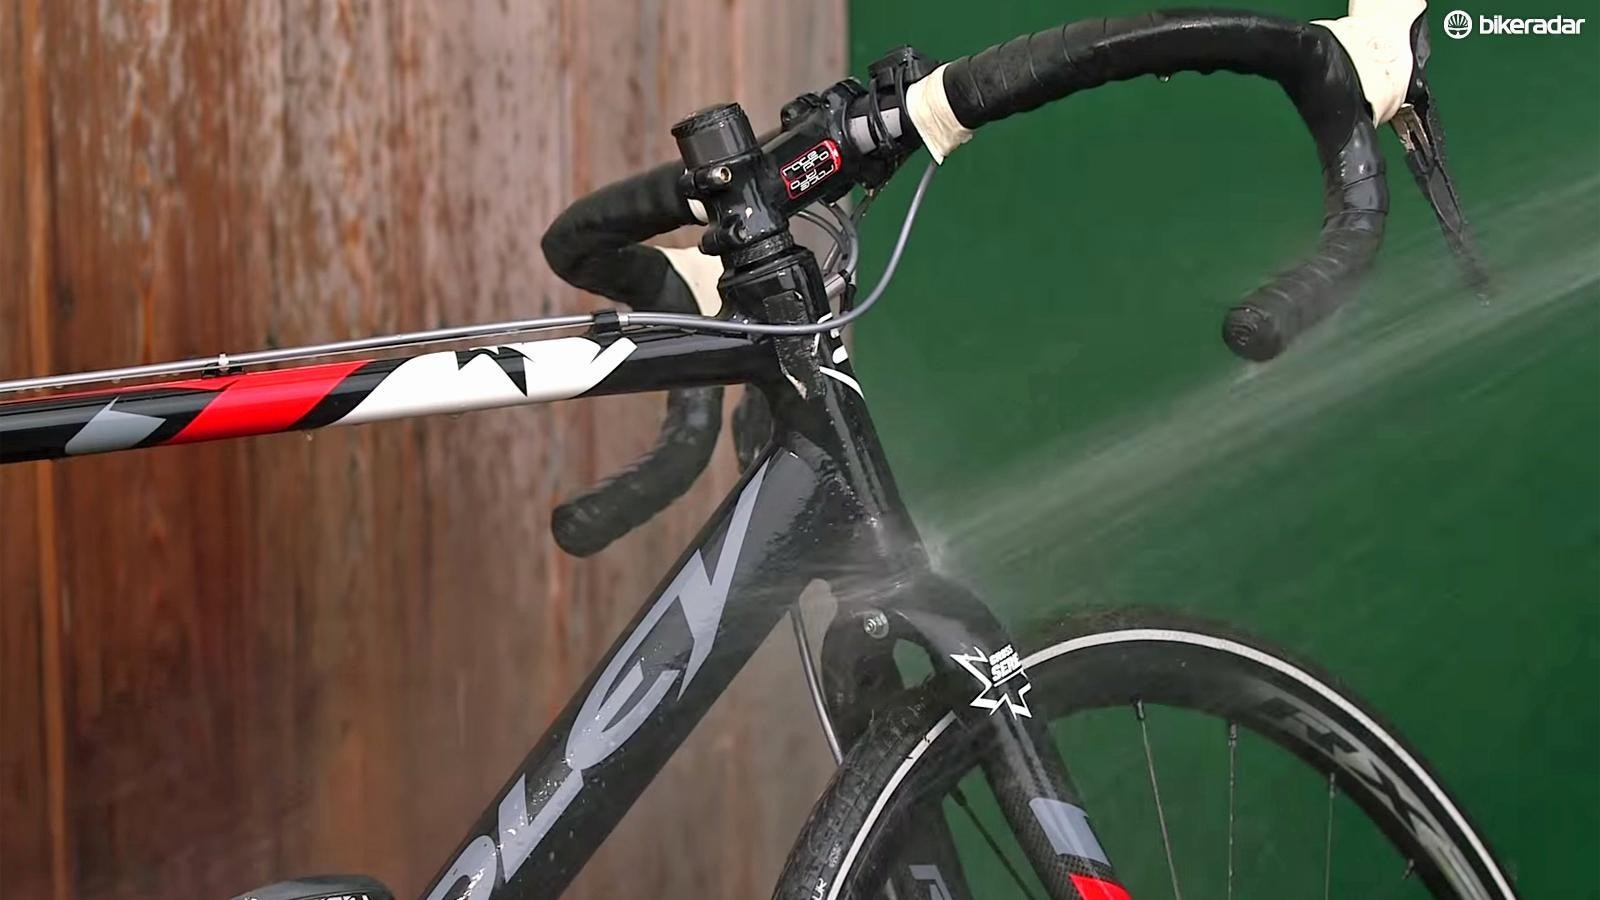 Collect water to clean your bike